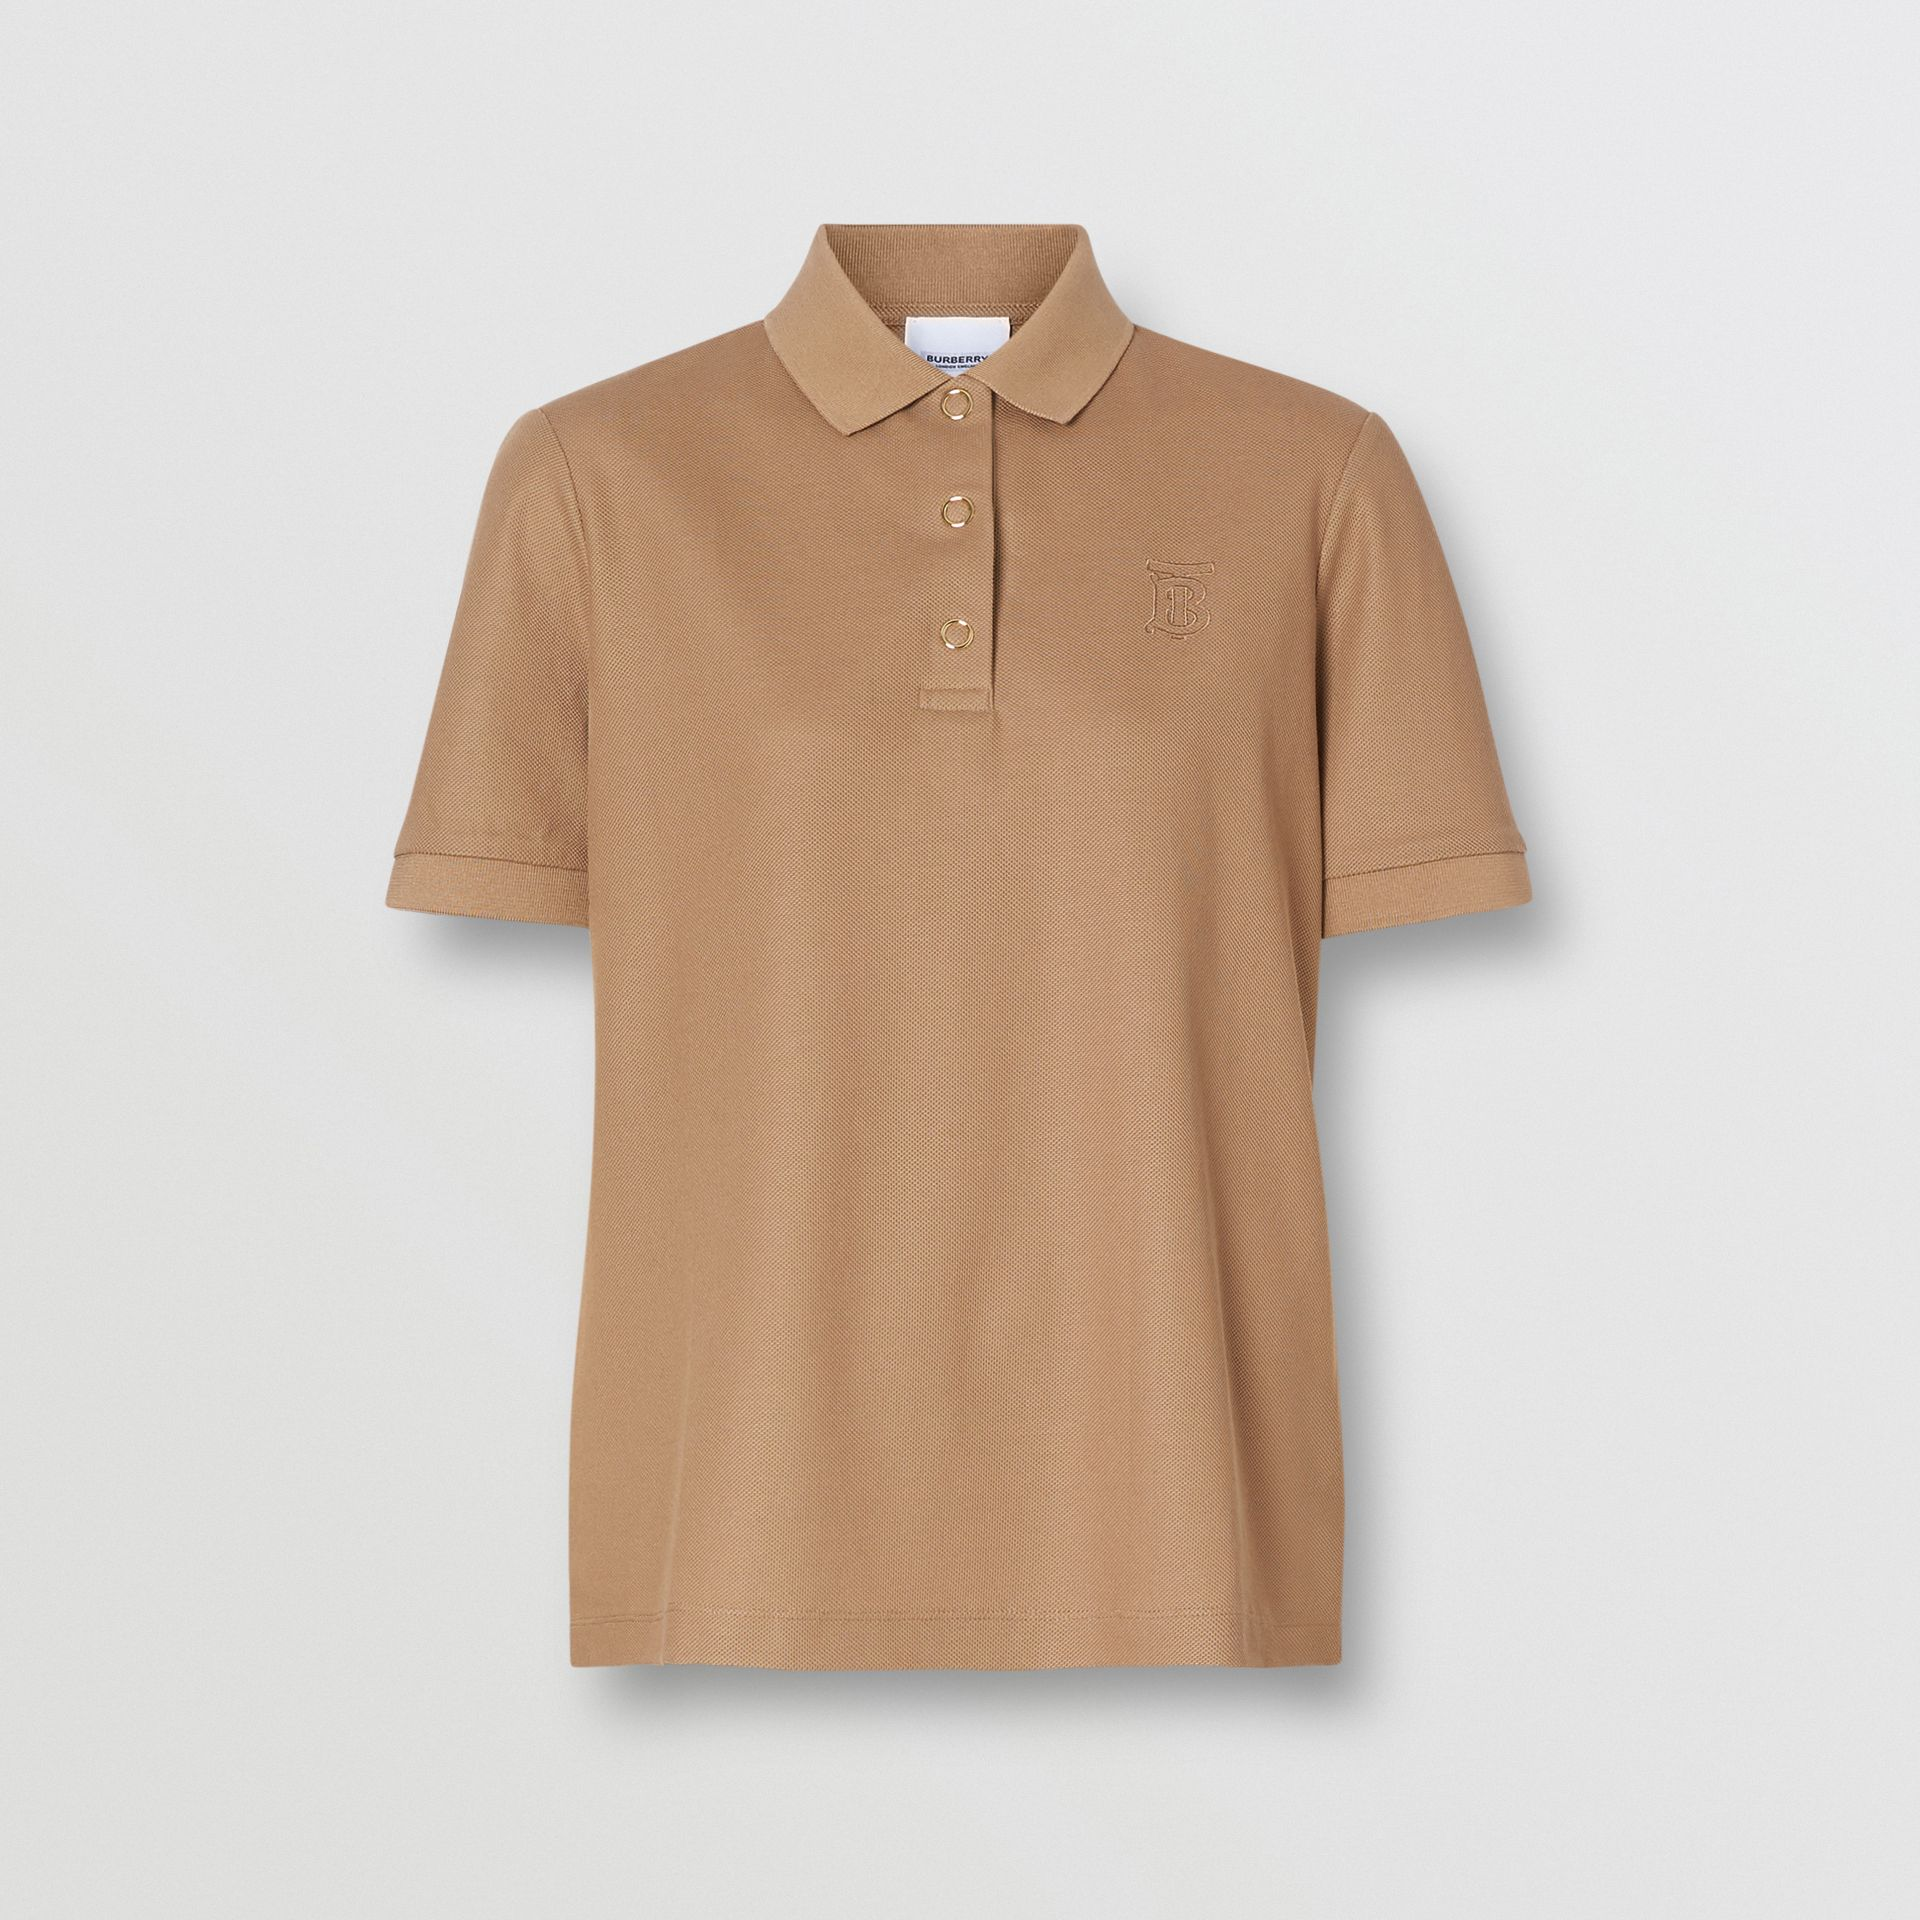 Monogram Motif Cotton Piqué Polo Shirt in Camel - Women | Burberry United Kingdom - gallery image 3